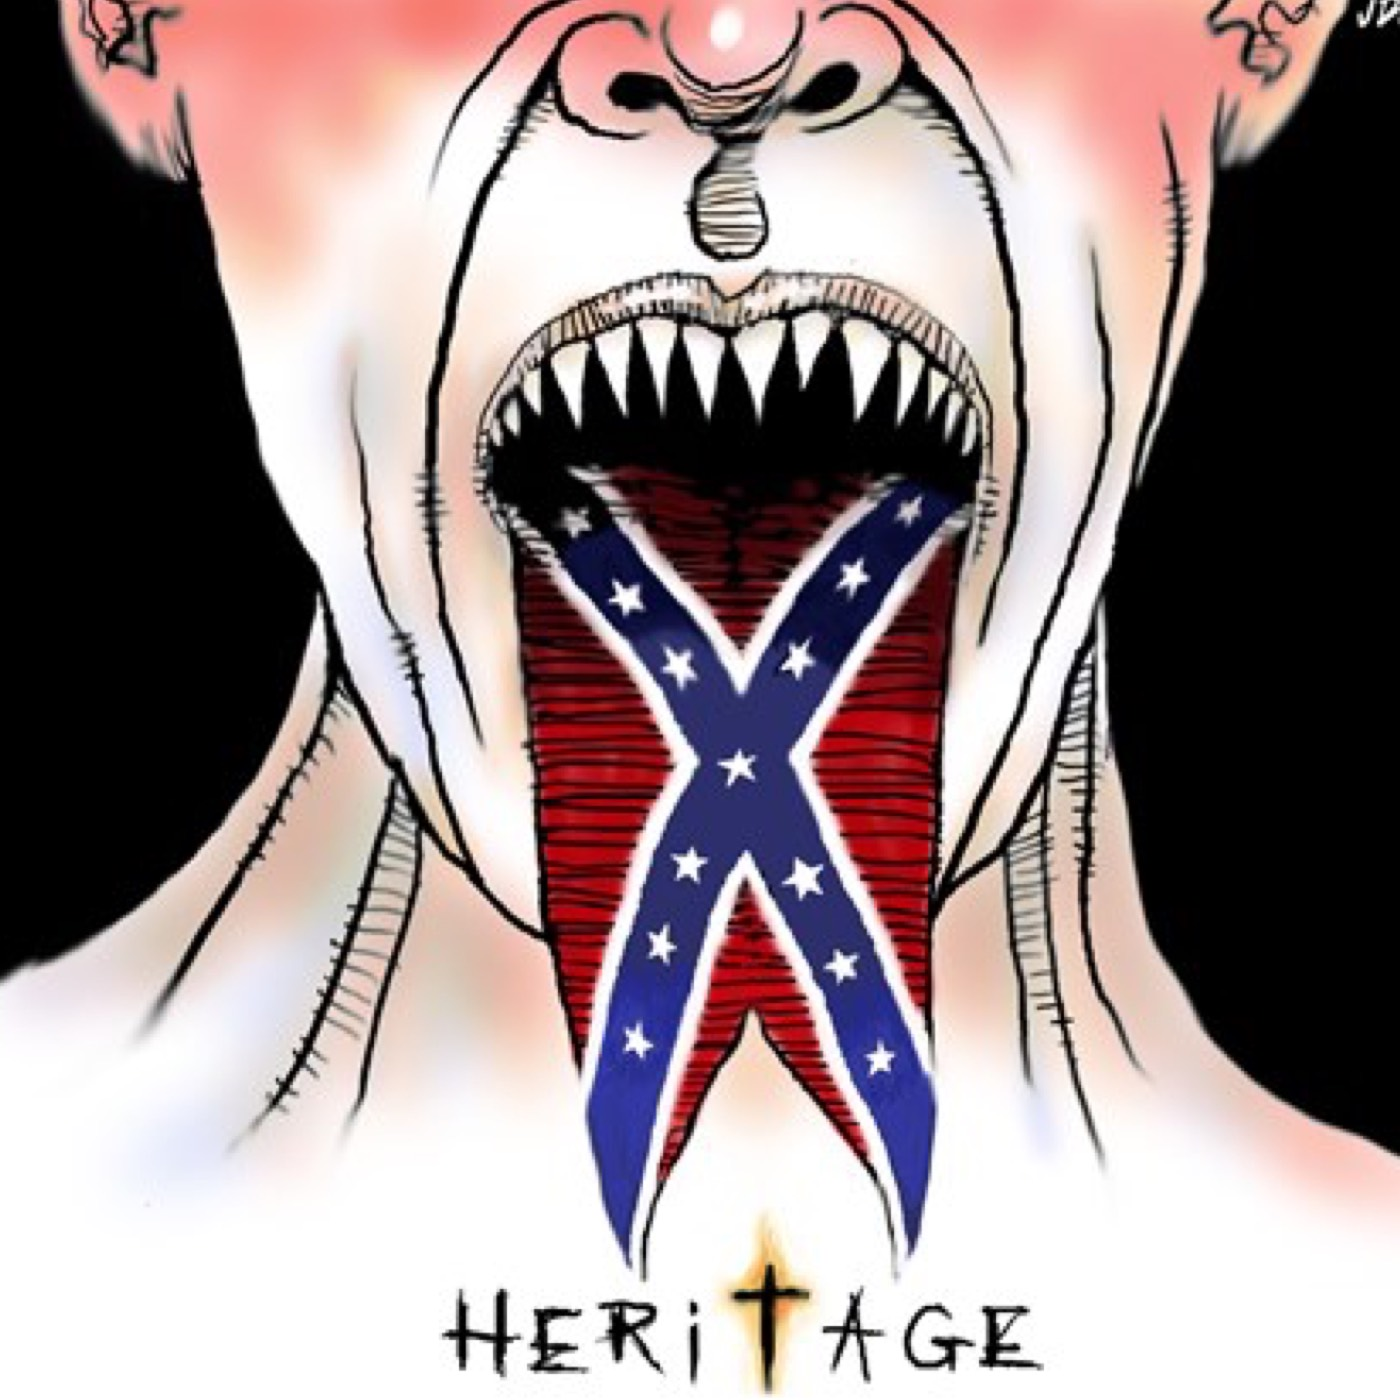 (2015/06/26) Heritage (Rachel Dolezal and the Charleston Shooting)